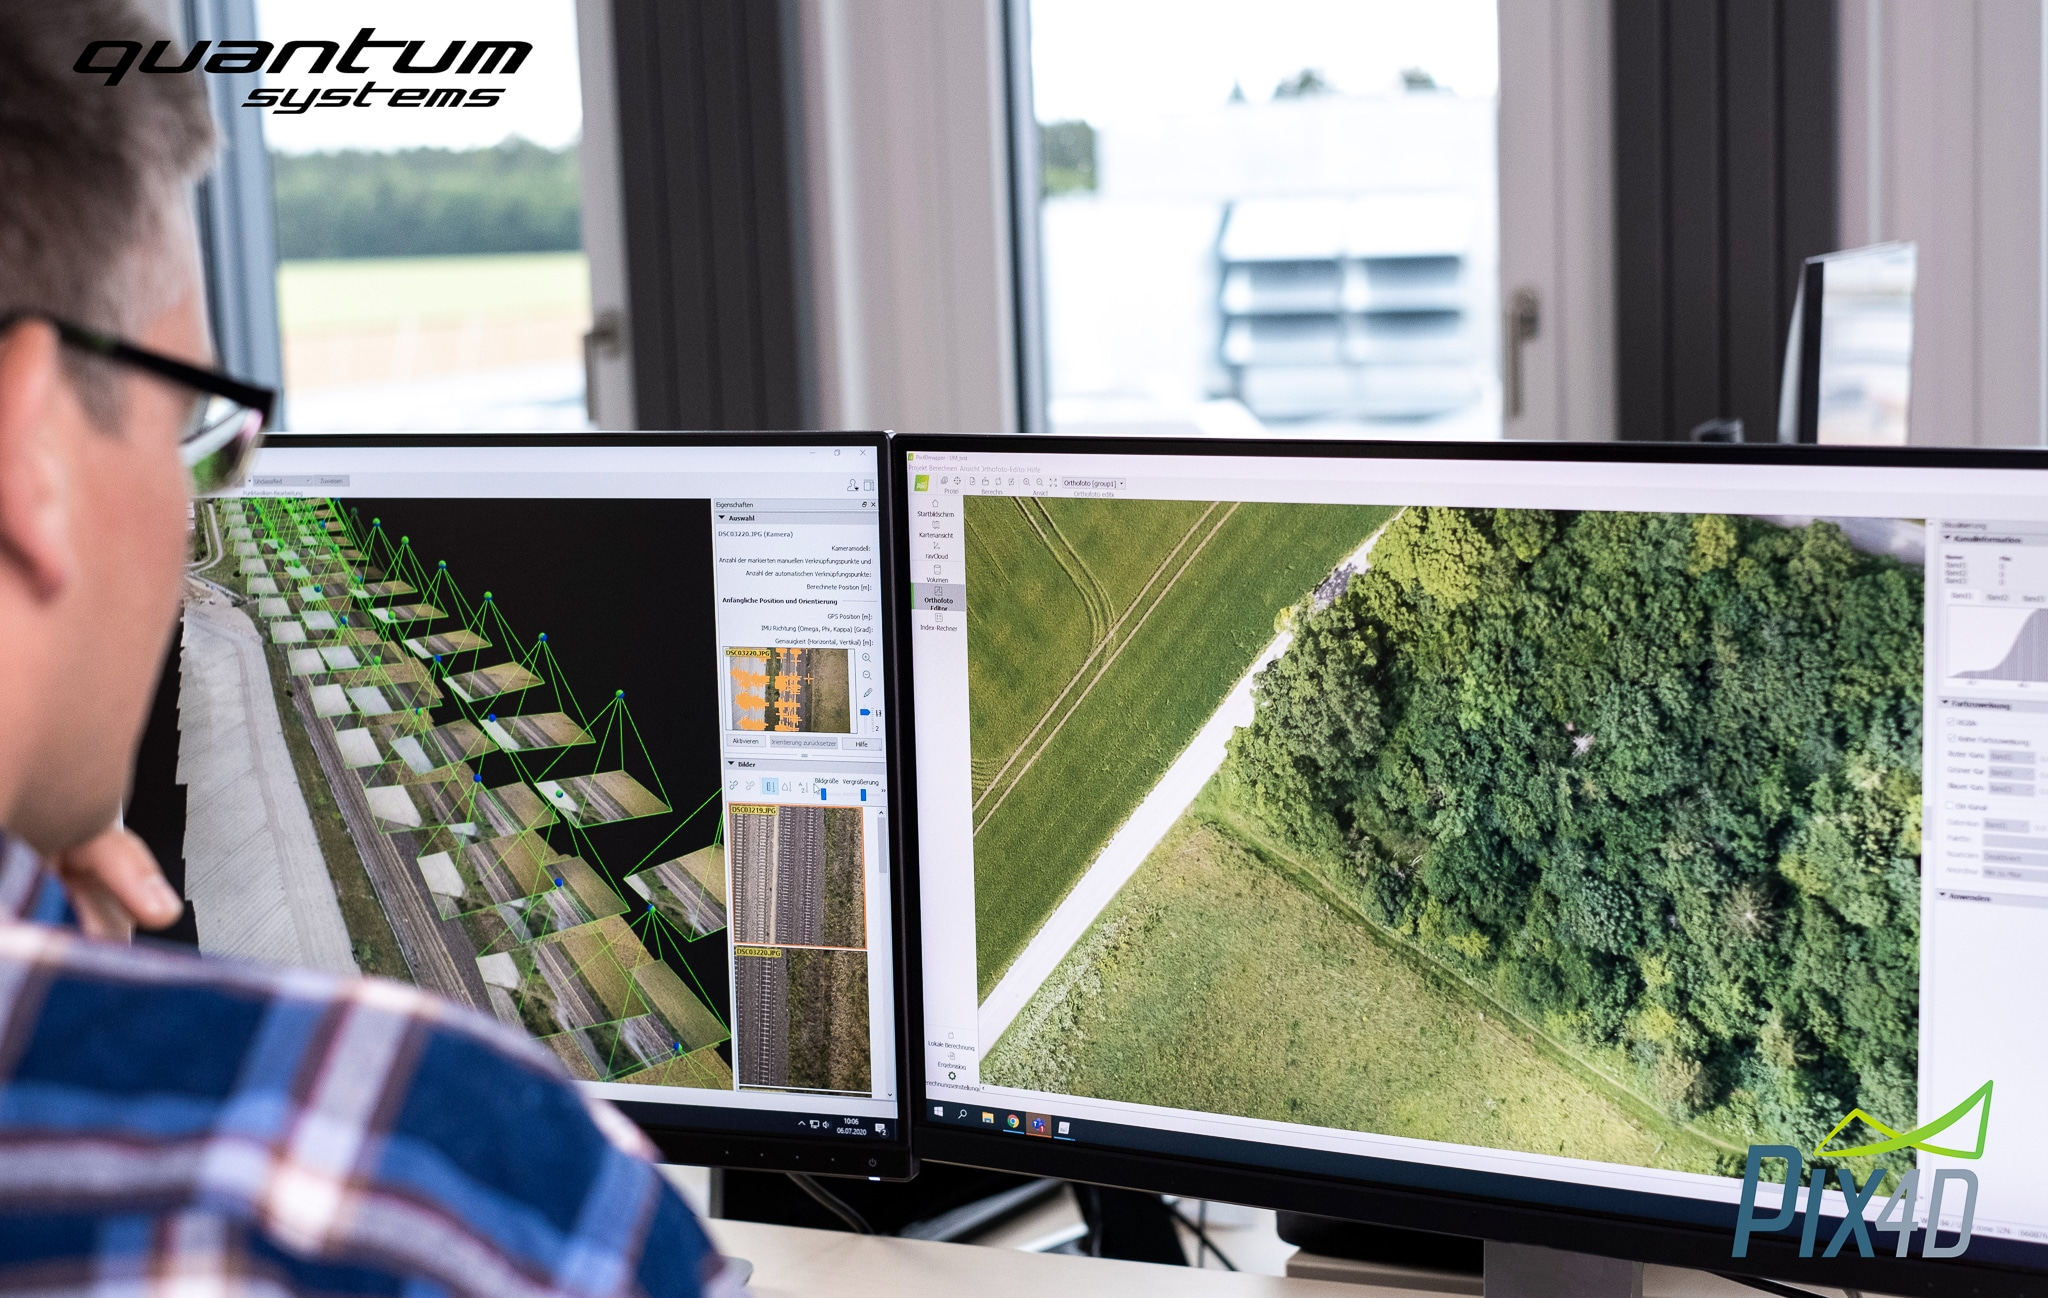 Quantum-Systems GmbH and Pix4D announce official partnership_5